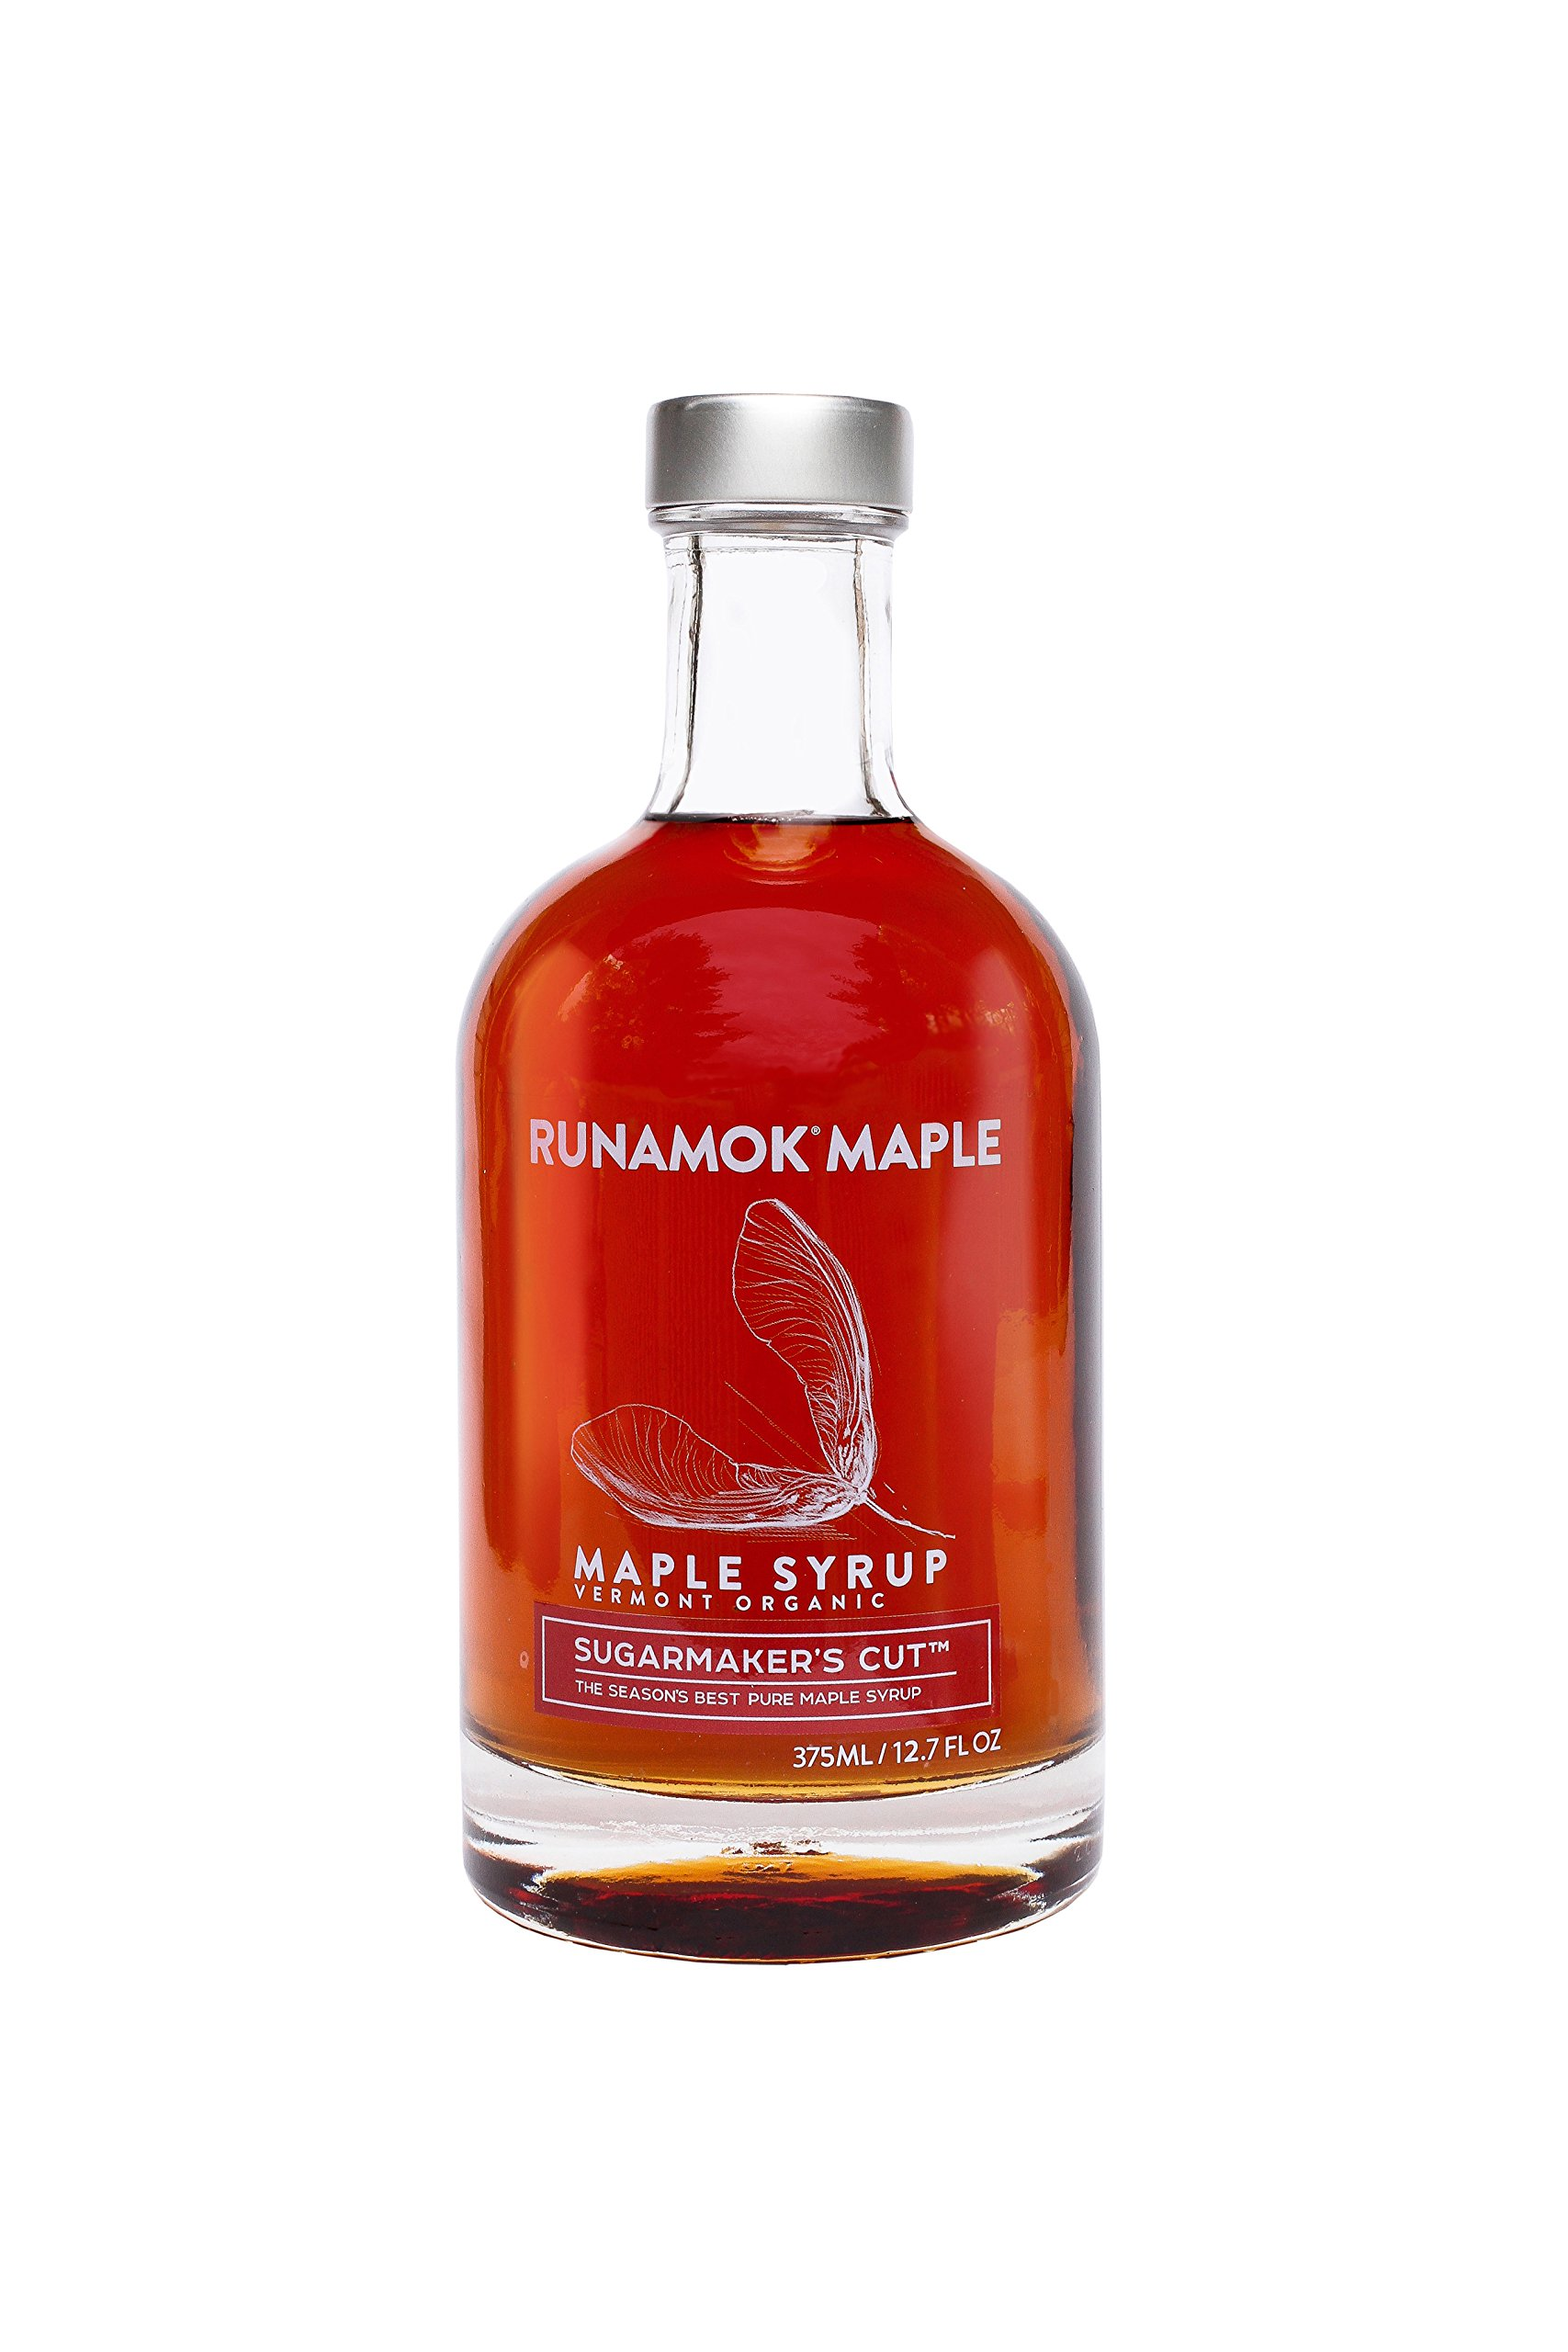 Runamok Maple - Sugarmaker's Cut Organic Maple Syrup - 375mL